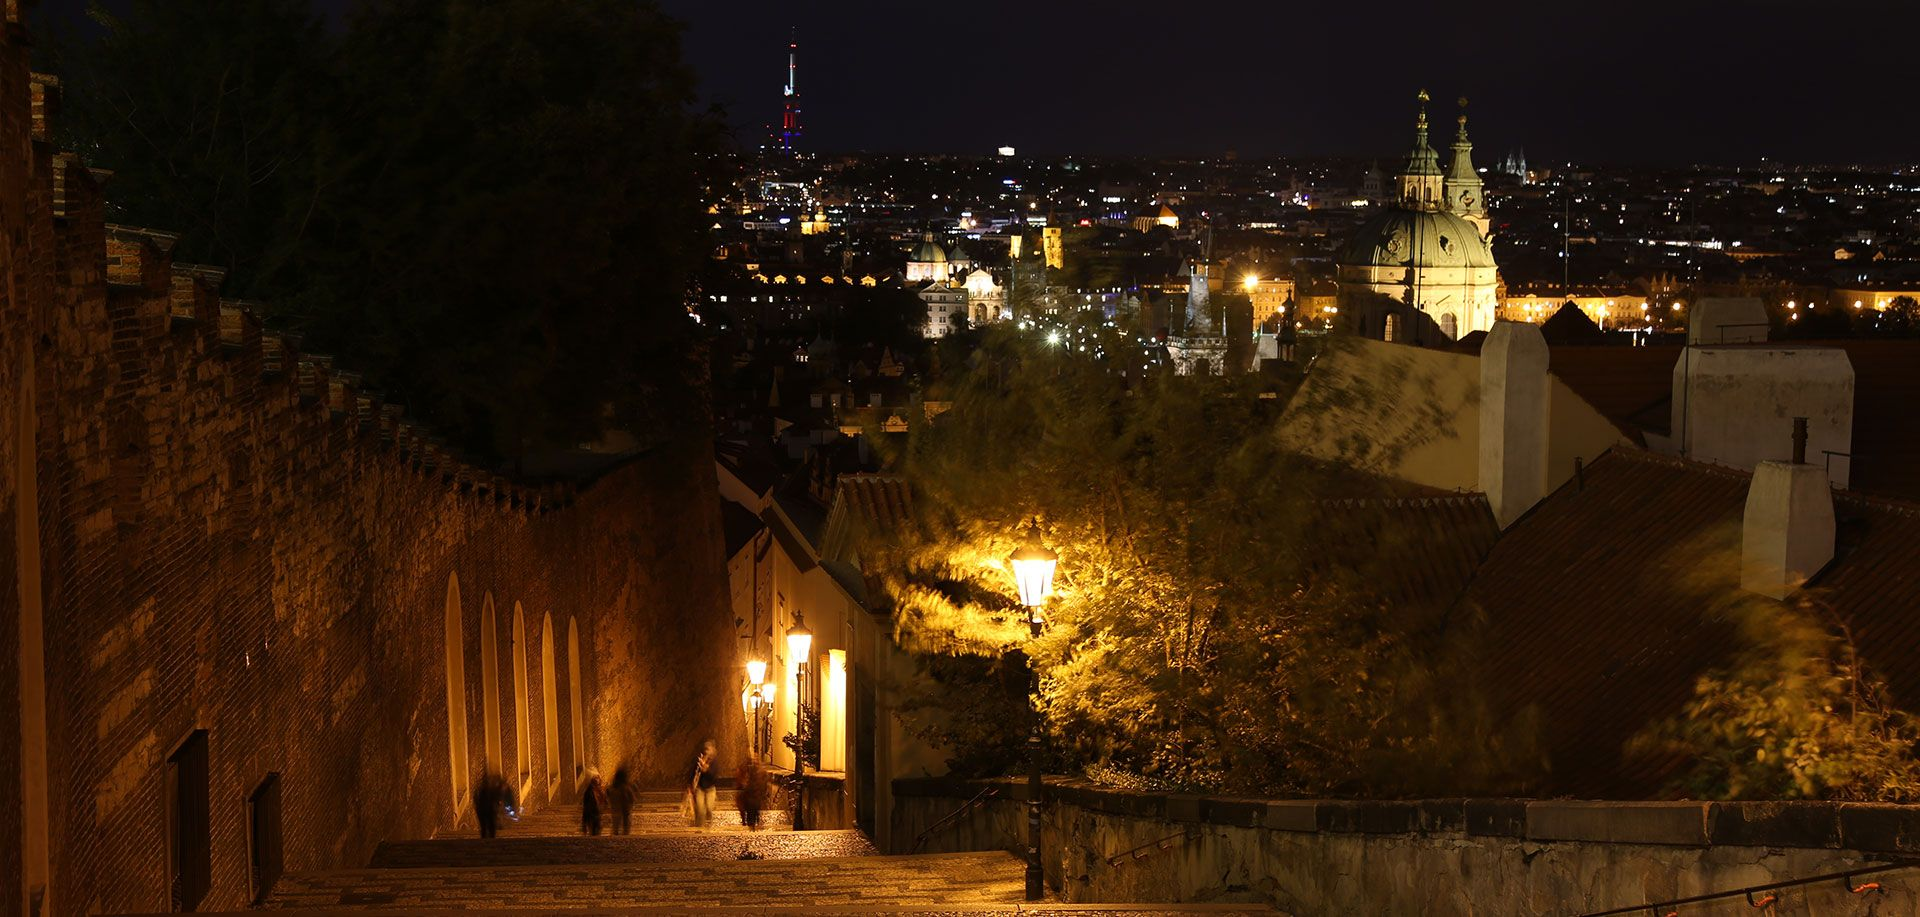 Night stairs by Prague castle, evening tour with Supreme Prague